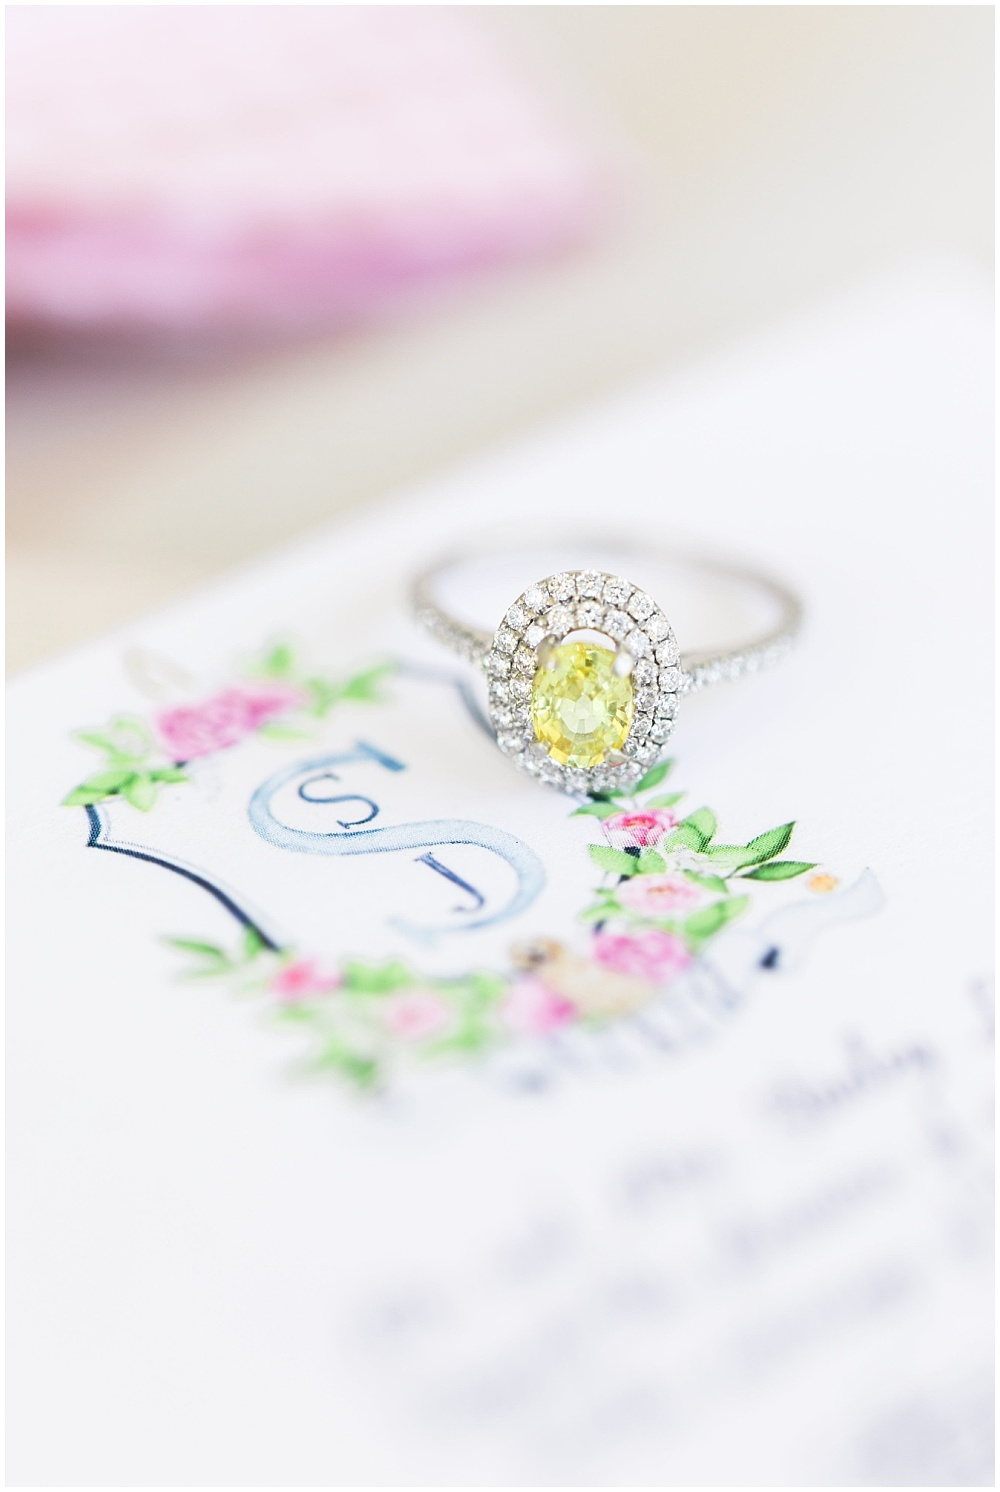 Custom wedding invitation with canary diamond ring, navy and pink southern wedding   Ivan & Louise Images and Jessica Dum Wedding Coordination